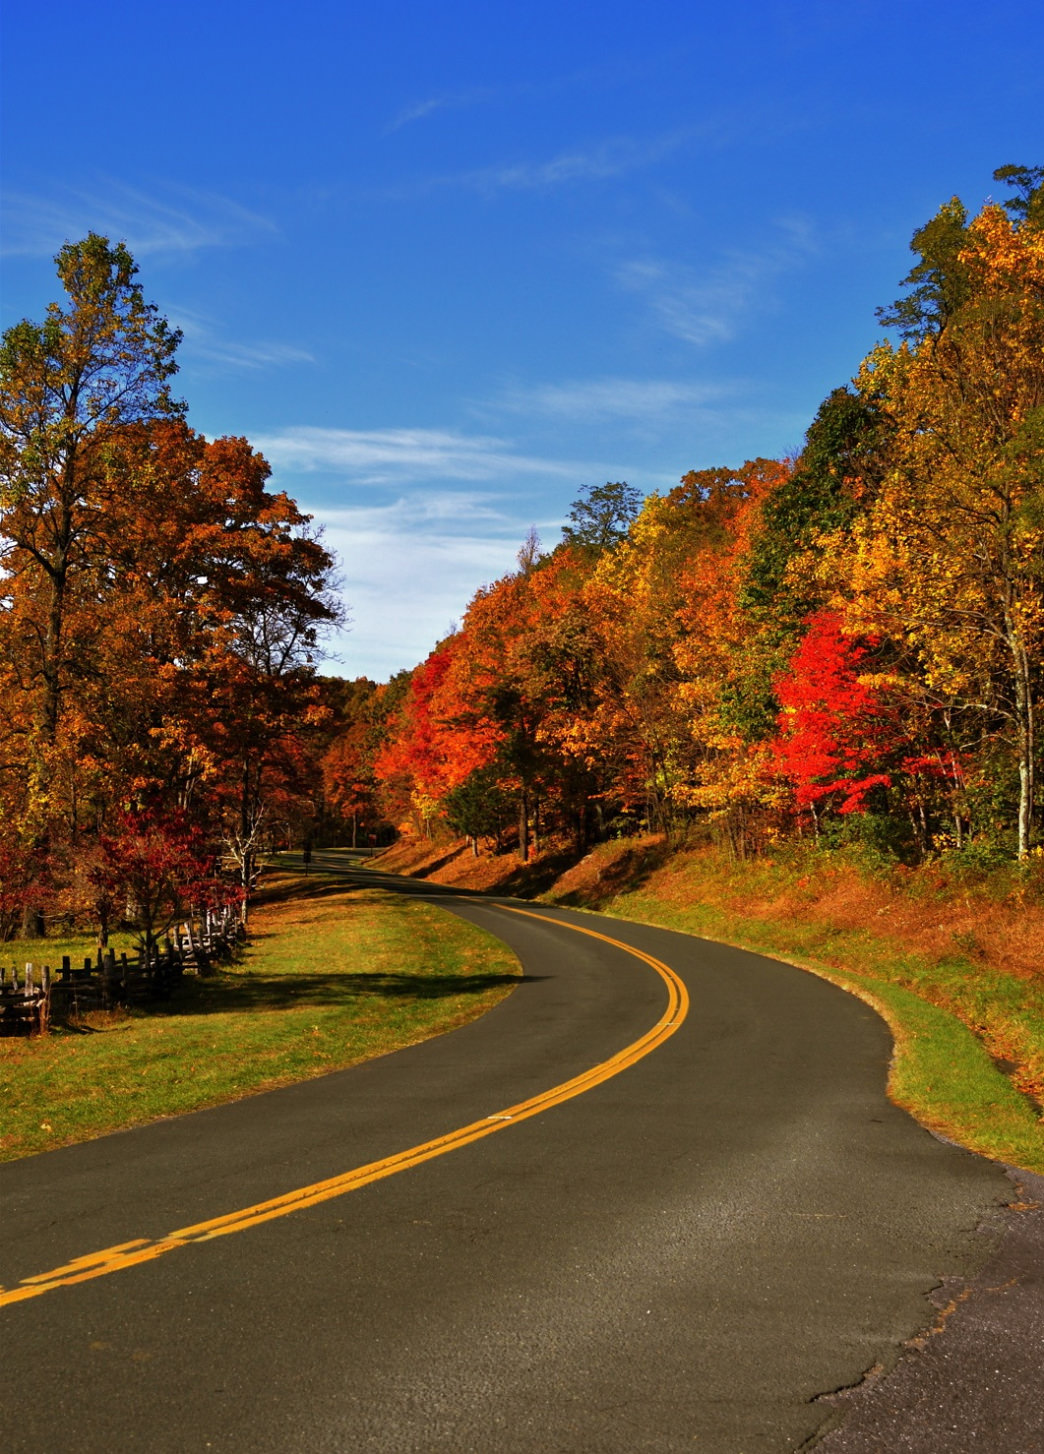 The Blue Ridge Parkway is one of the country's most scenic fall drives.